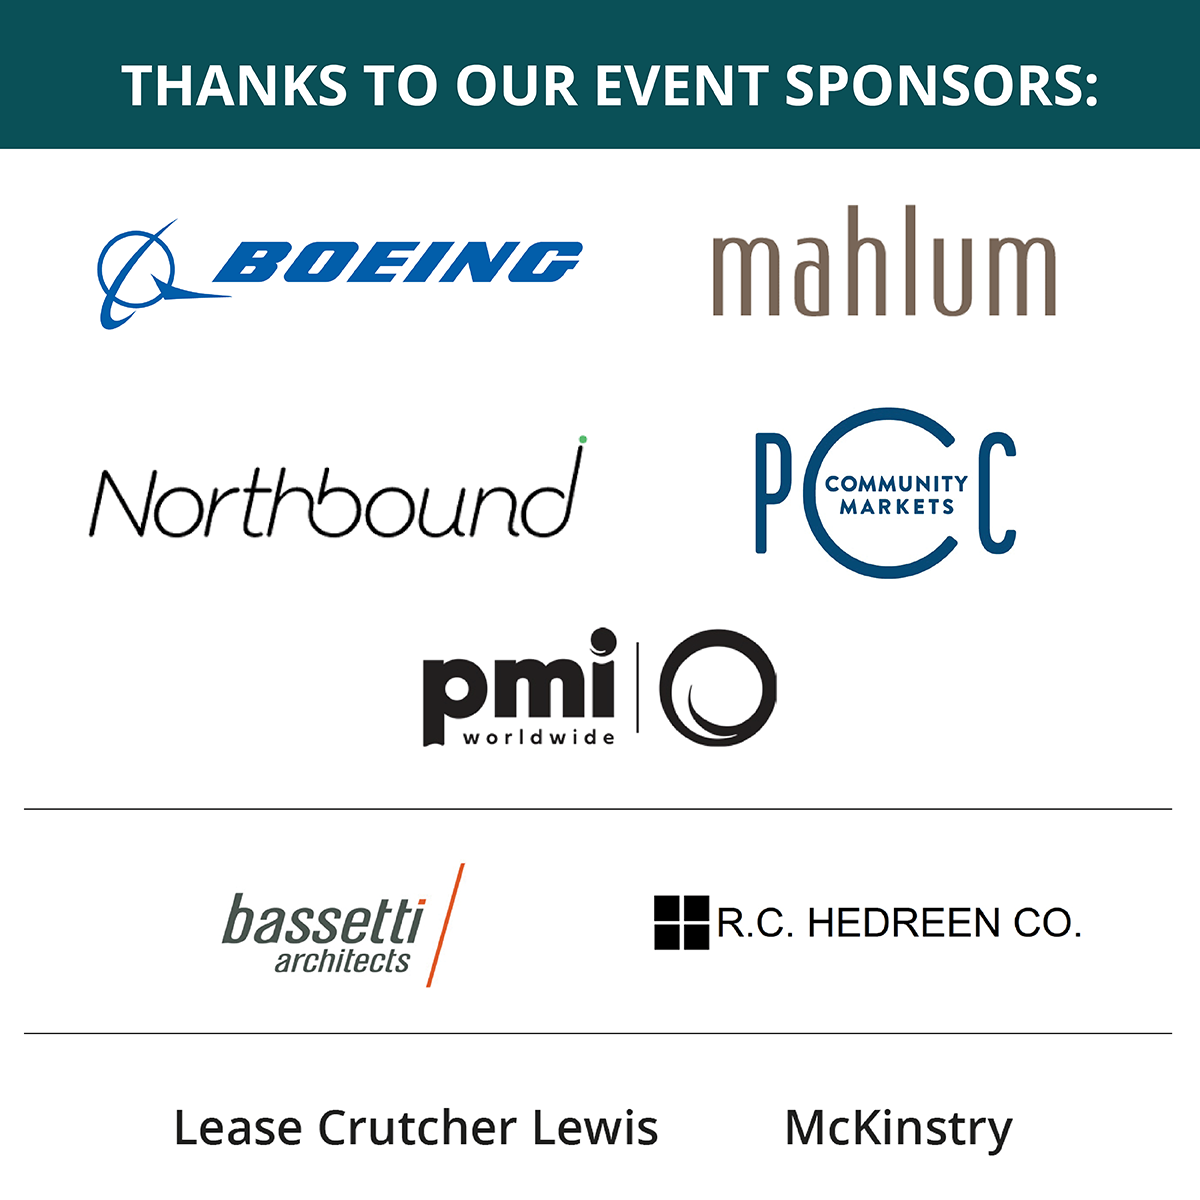 Thanks to our event sponsors: Gold level- Boeing, Mahlum, Northbound, PCC Community Markets, Pacific Market International SIlver level - Bassetti Architects, R.C. Hedreen Co. Bronze level - Lease Crutcher Lewis, McKinstry